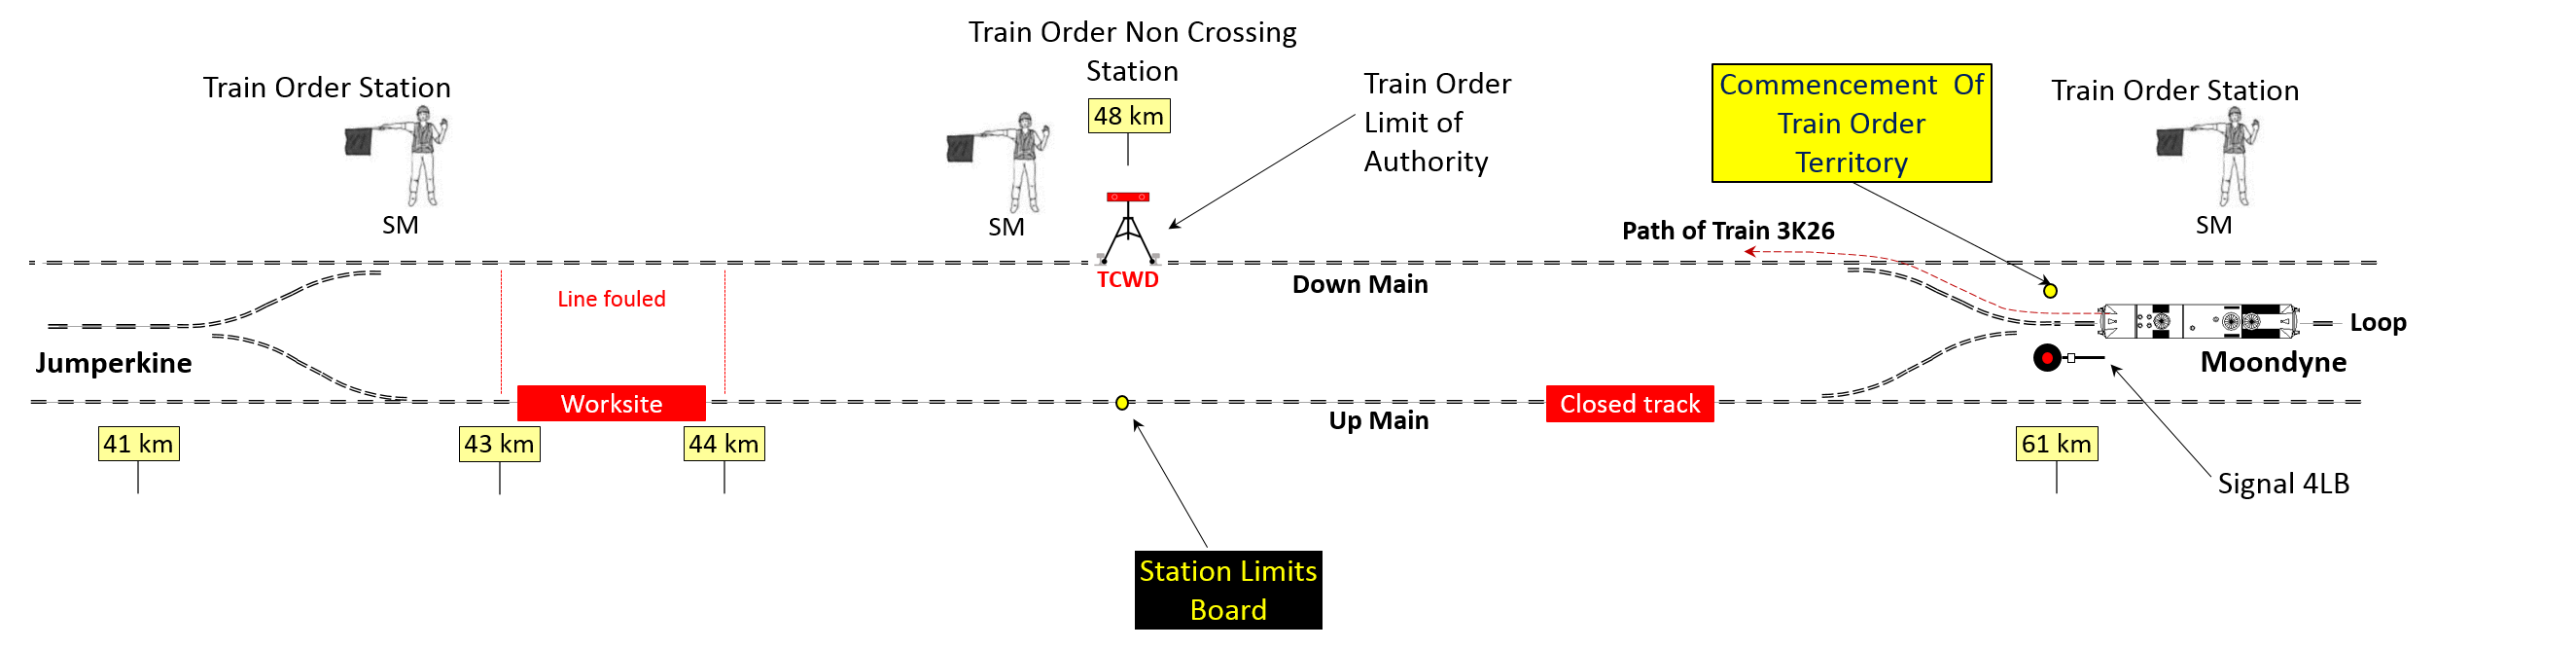 Figure 2: Map showing positions of the Stationmasters and authority limits